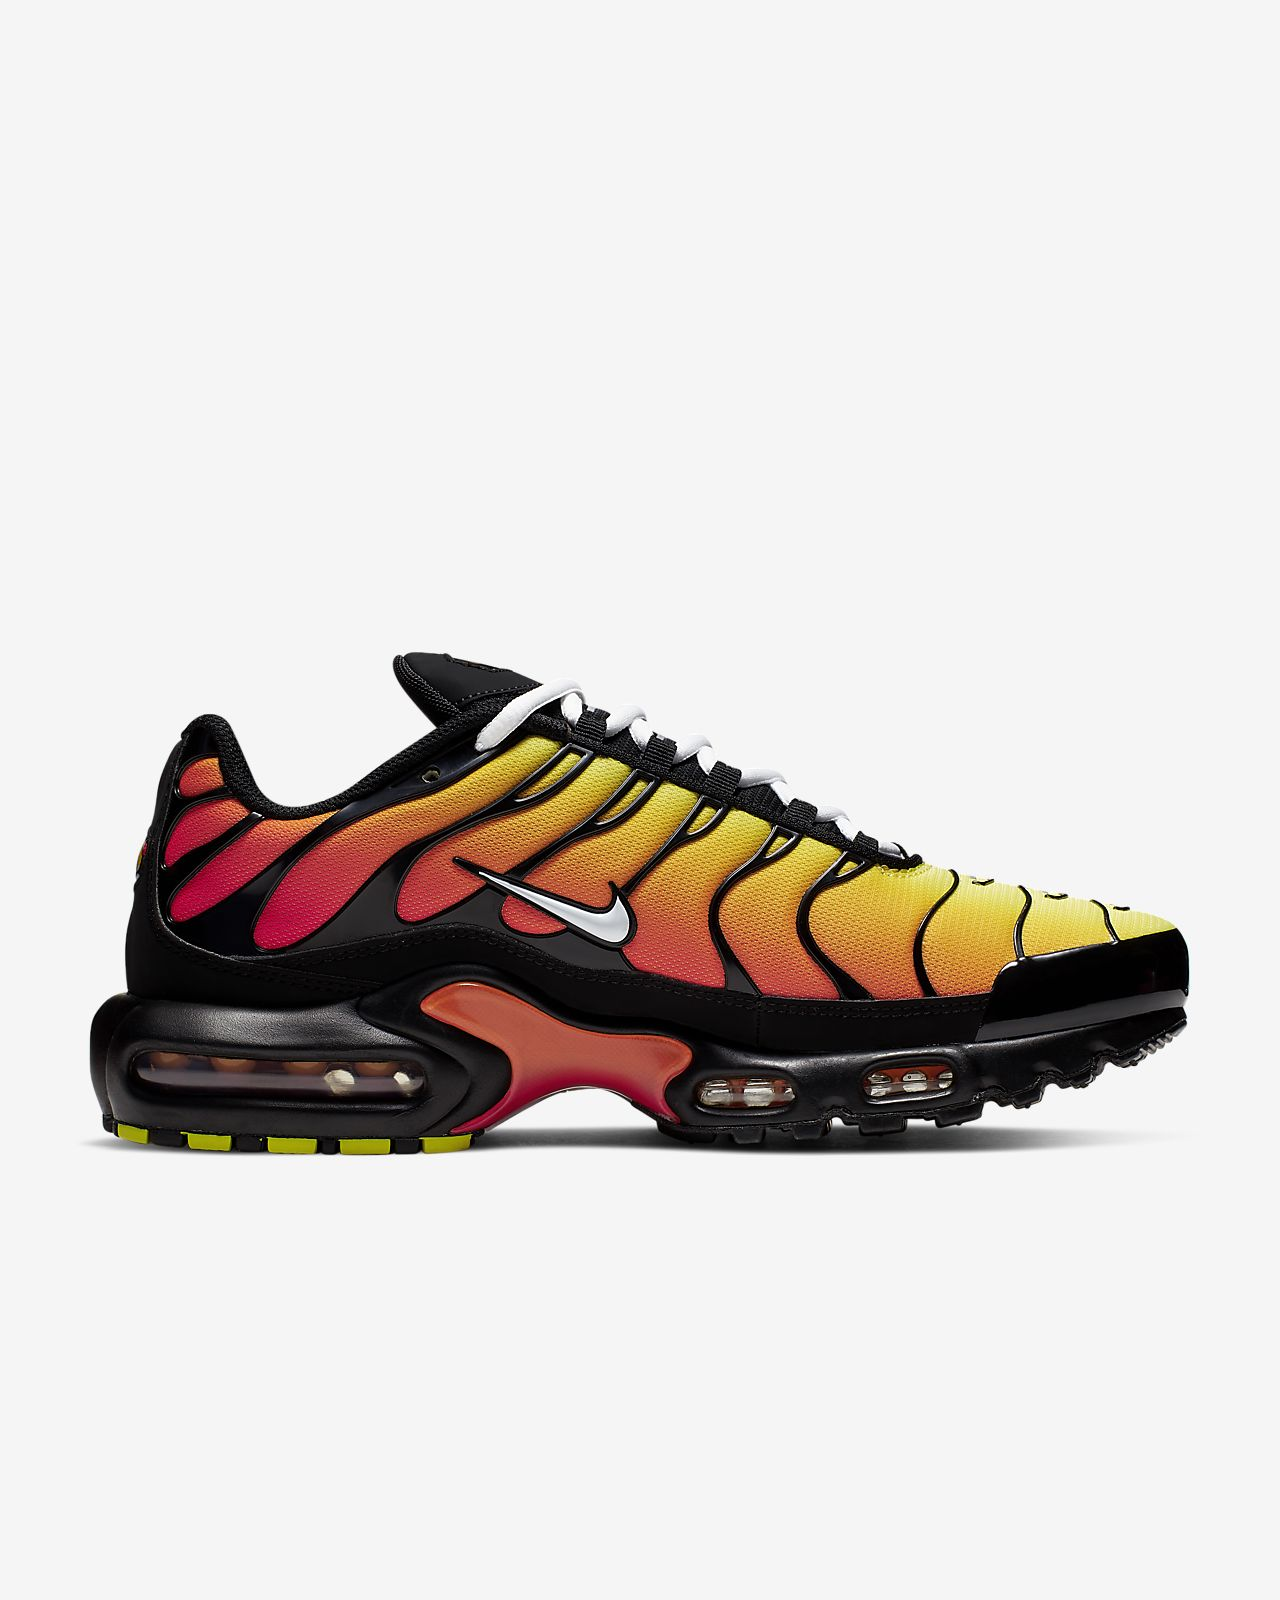 NIKE DAMSKIE AIR MAX PLUS GS CZYSTEJ PLATYNY PURE PLATINUM 0